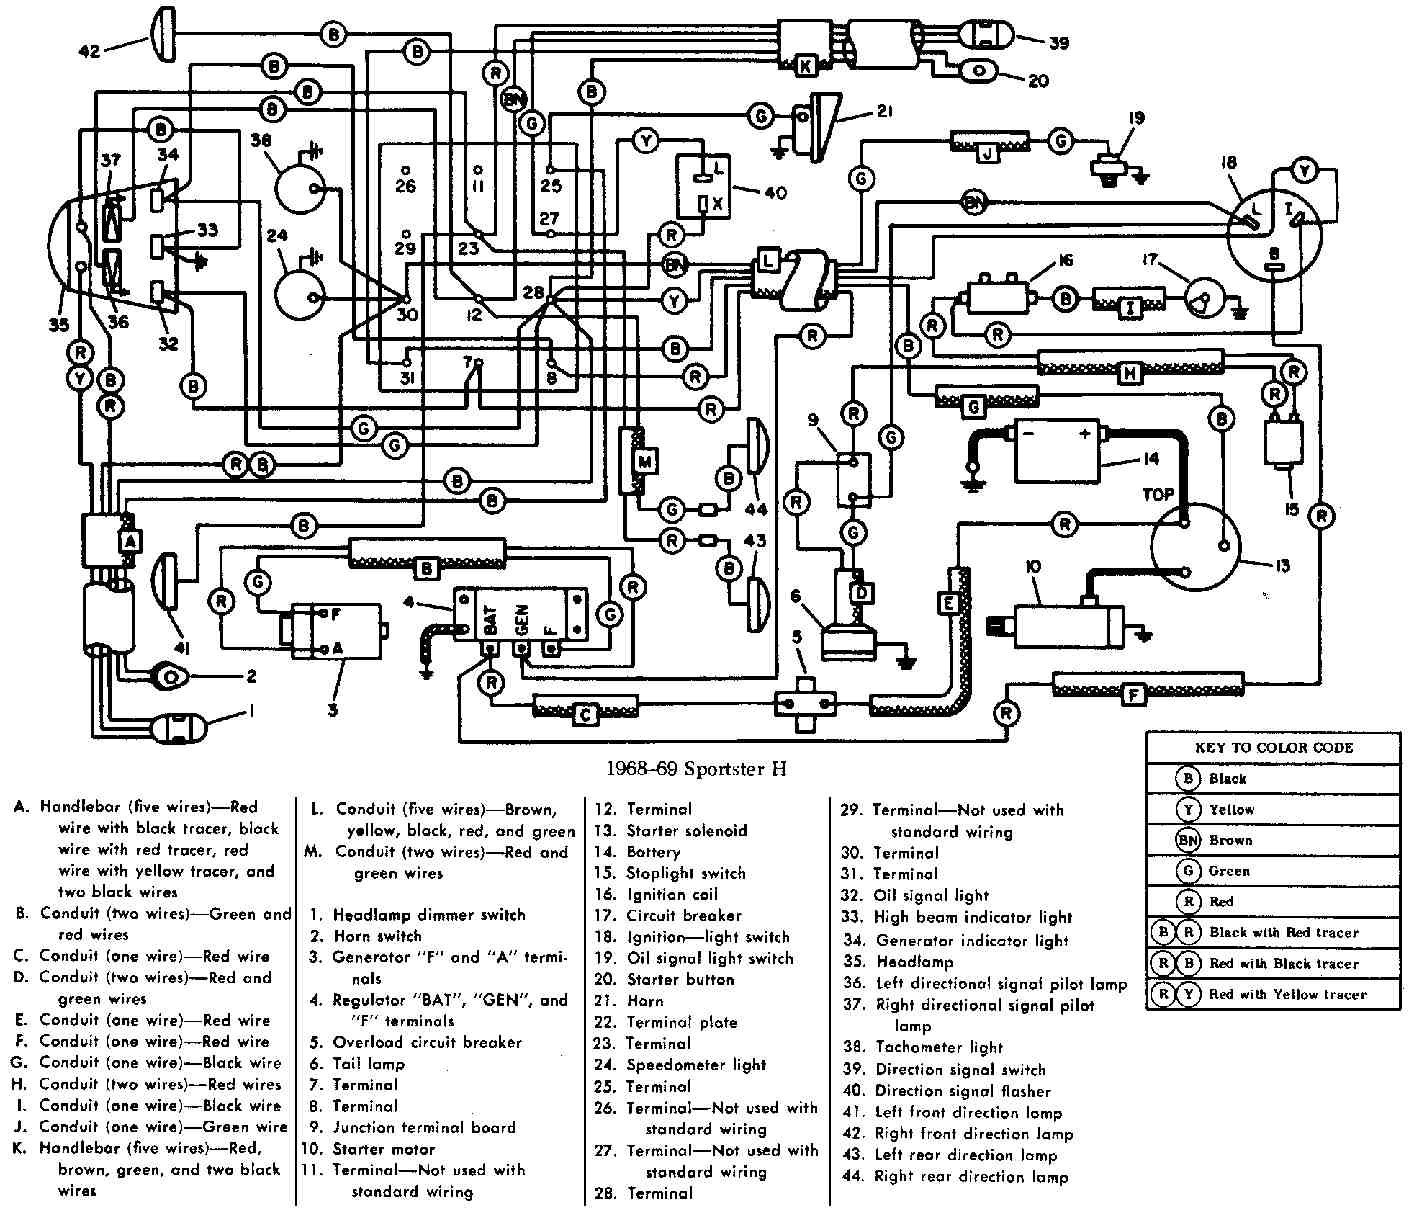 2007 harley sportster wiring diagram private sharing about wiring rh caraccessoriesandsoftware co uk